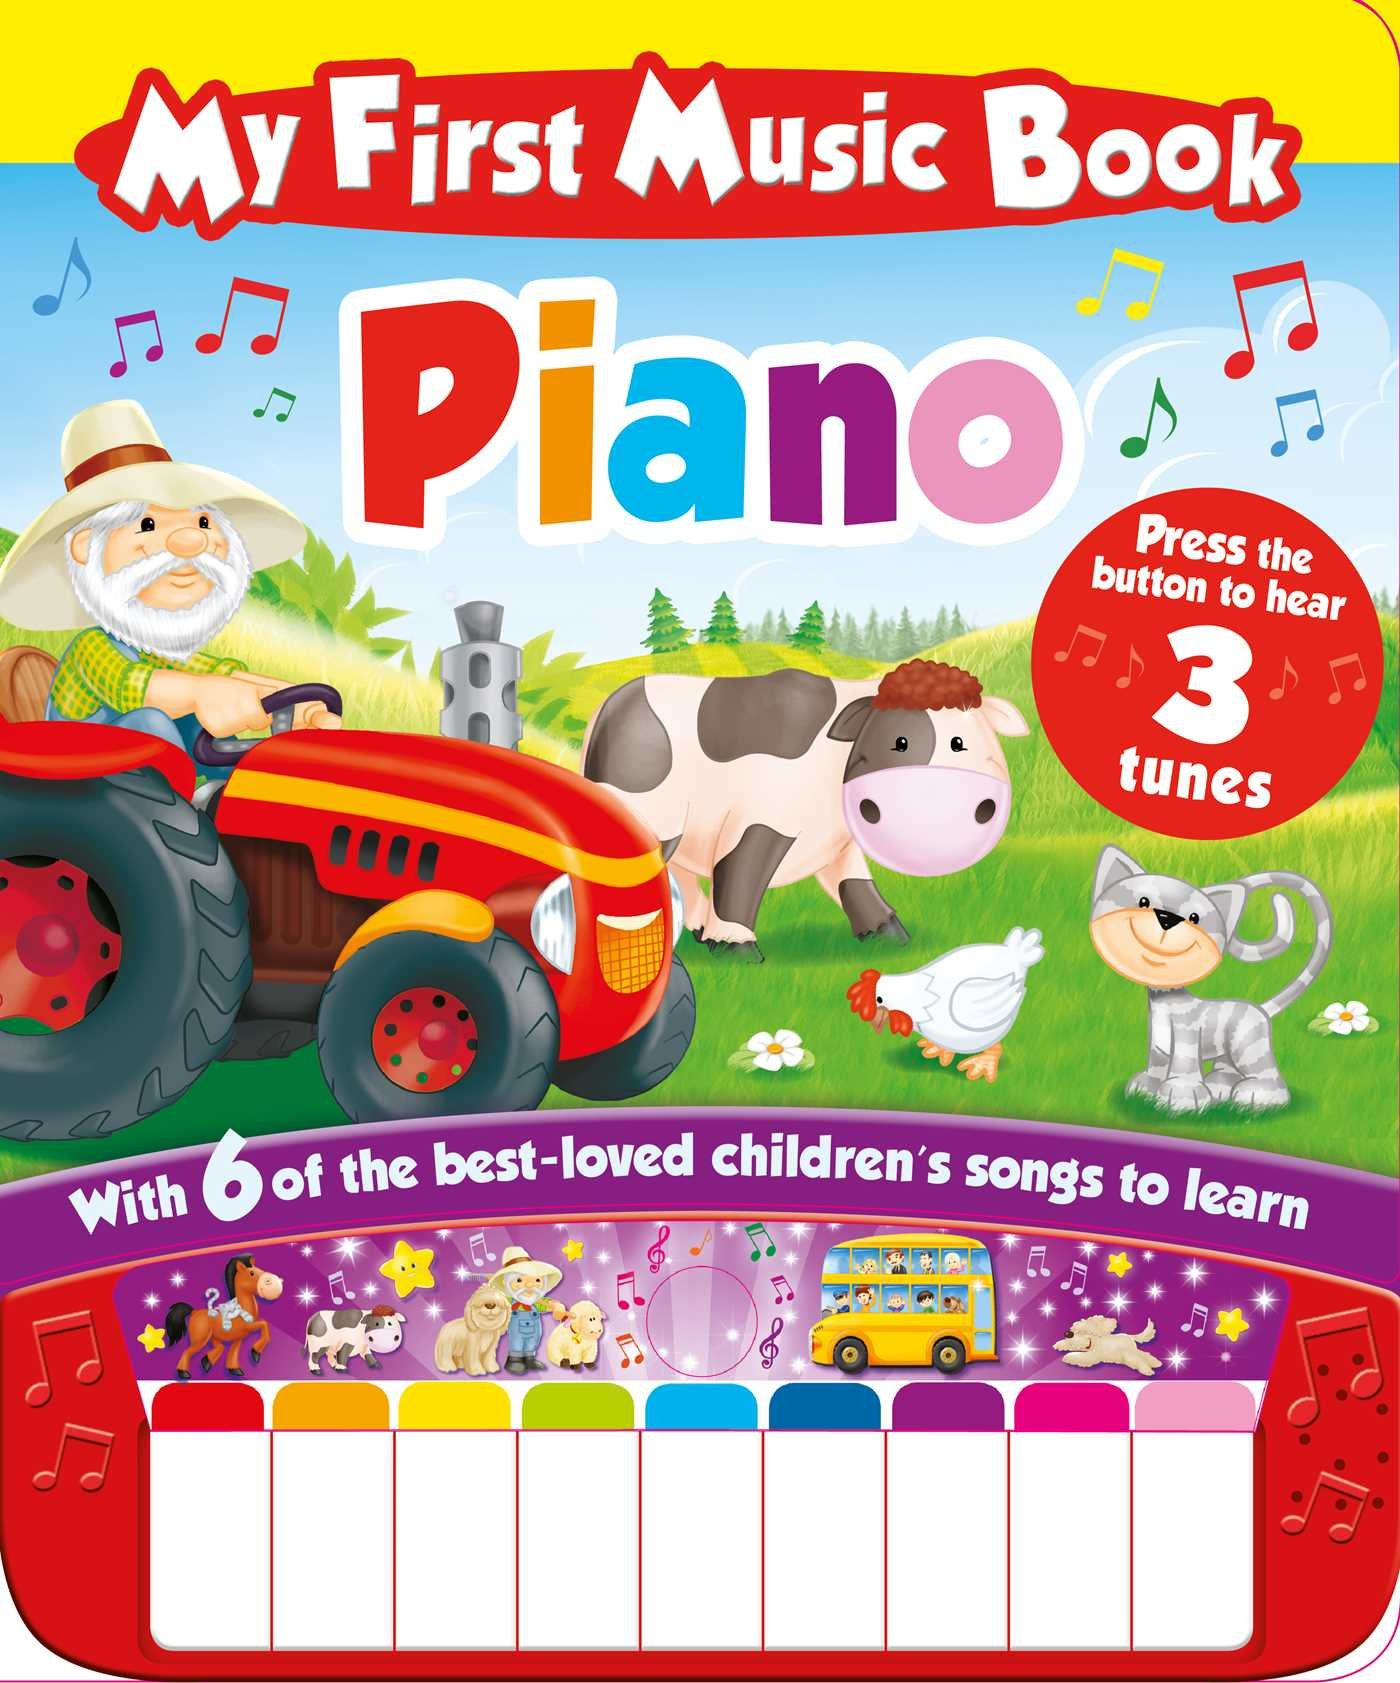 My First Music Book: Piano (Sound Book): With 6 of the best